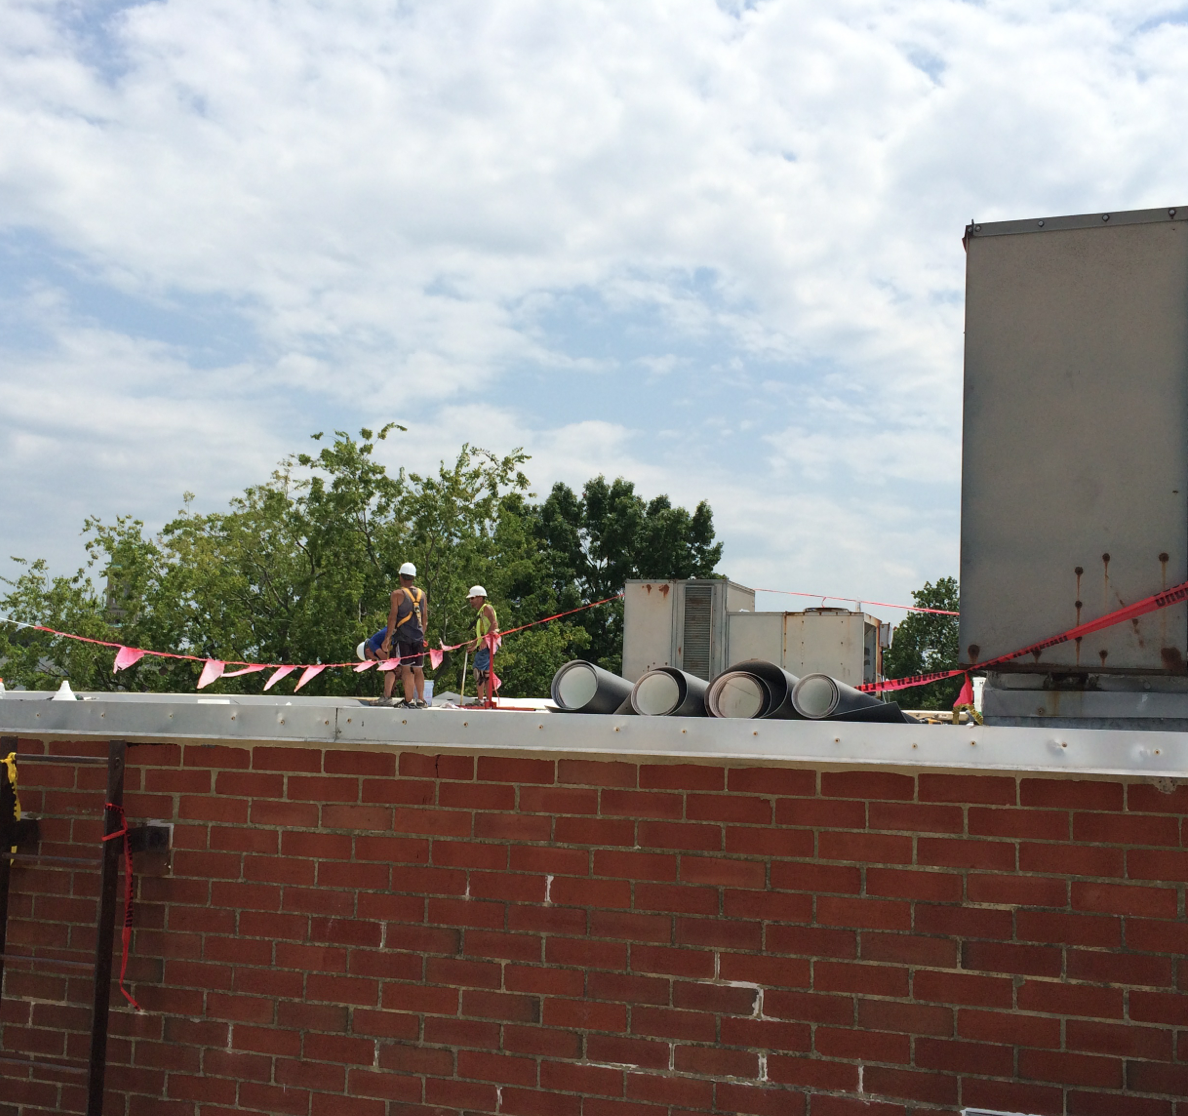 Flat Roofs and Blue Skies in Norfolk, VA